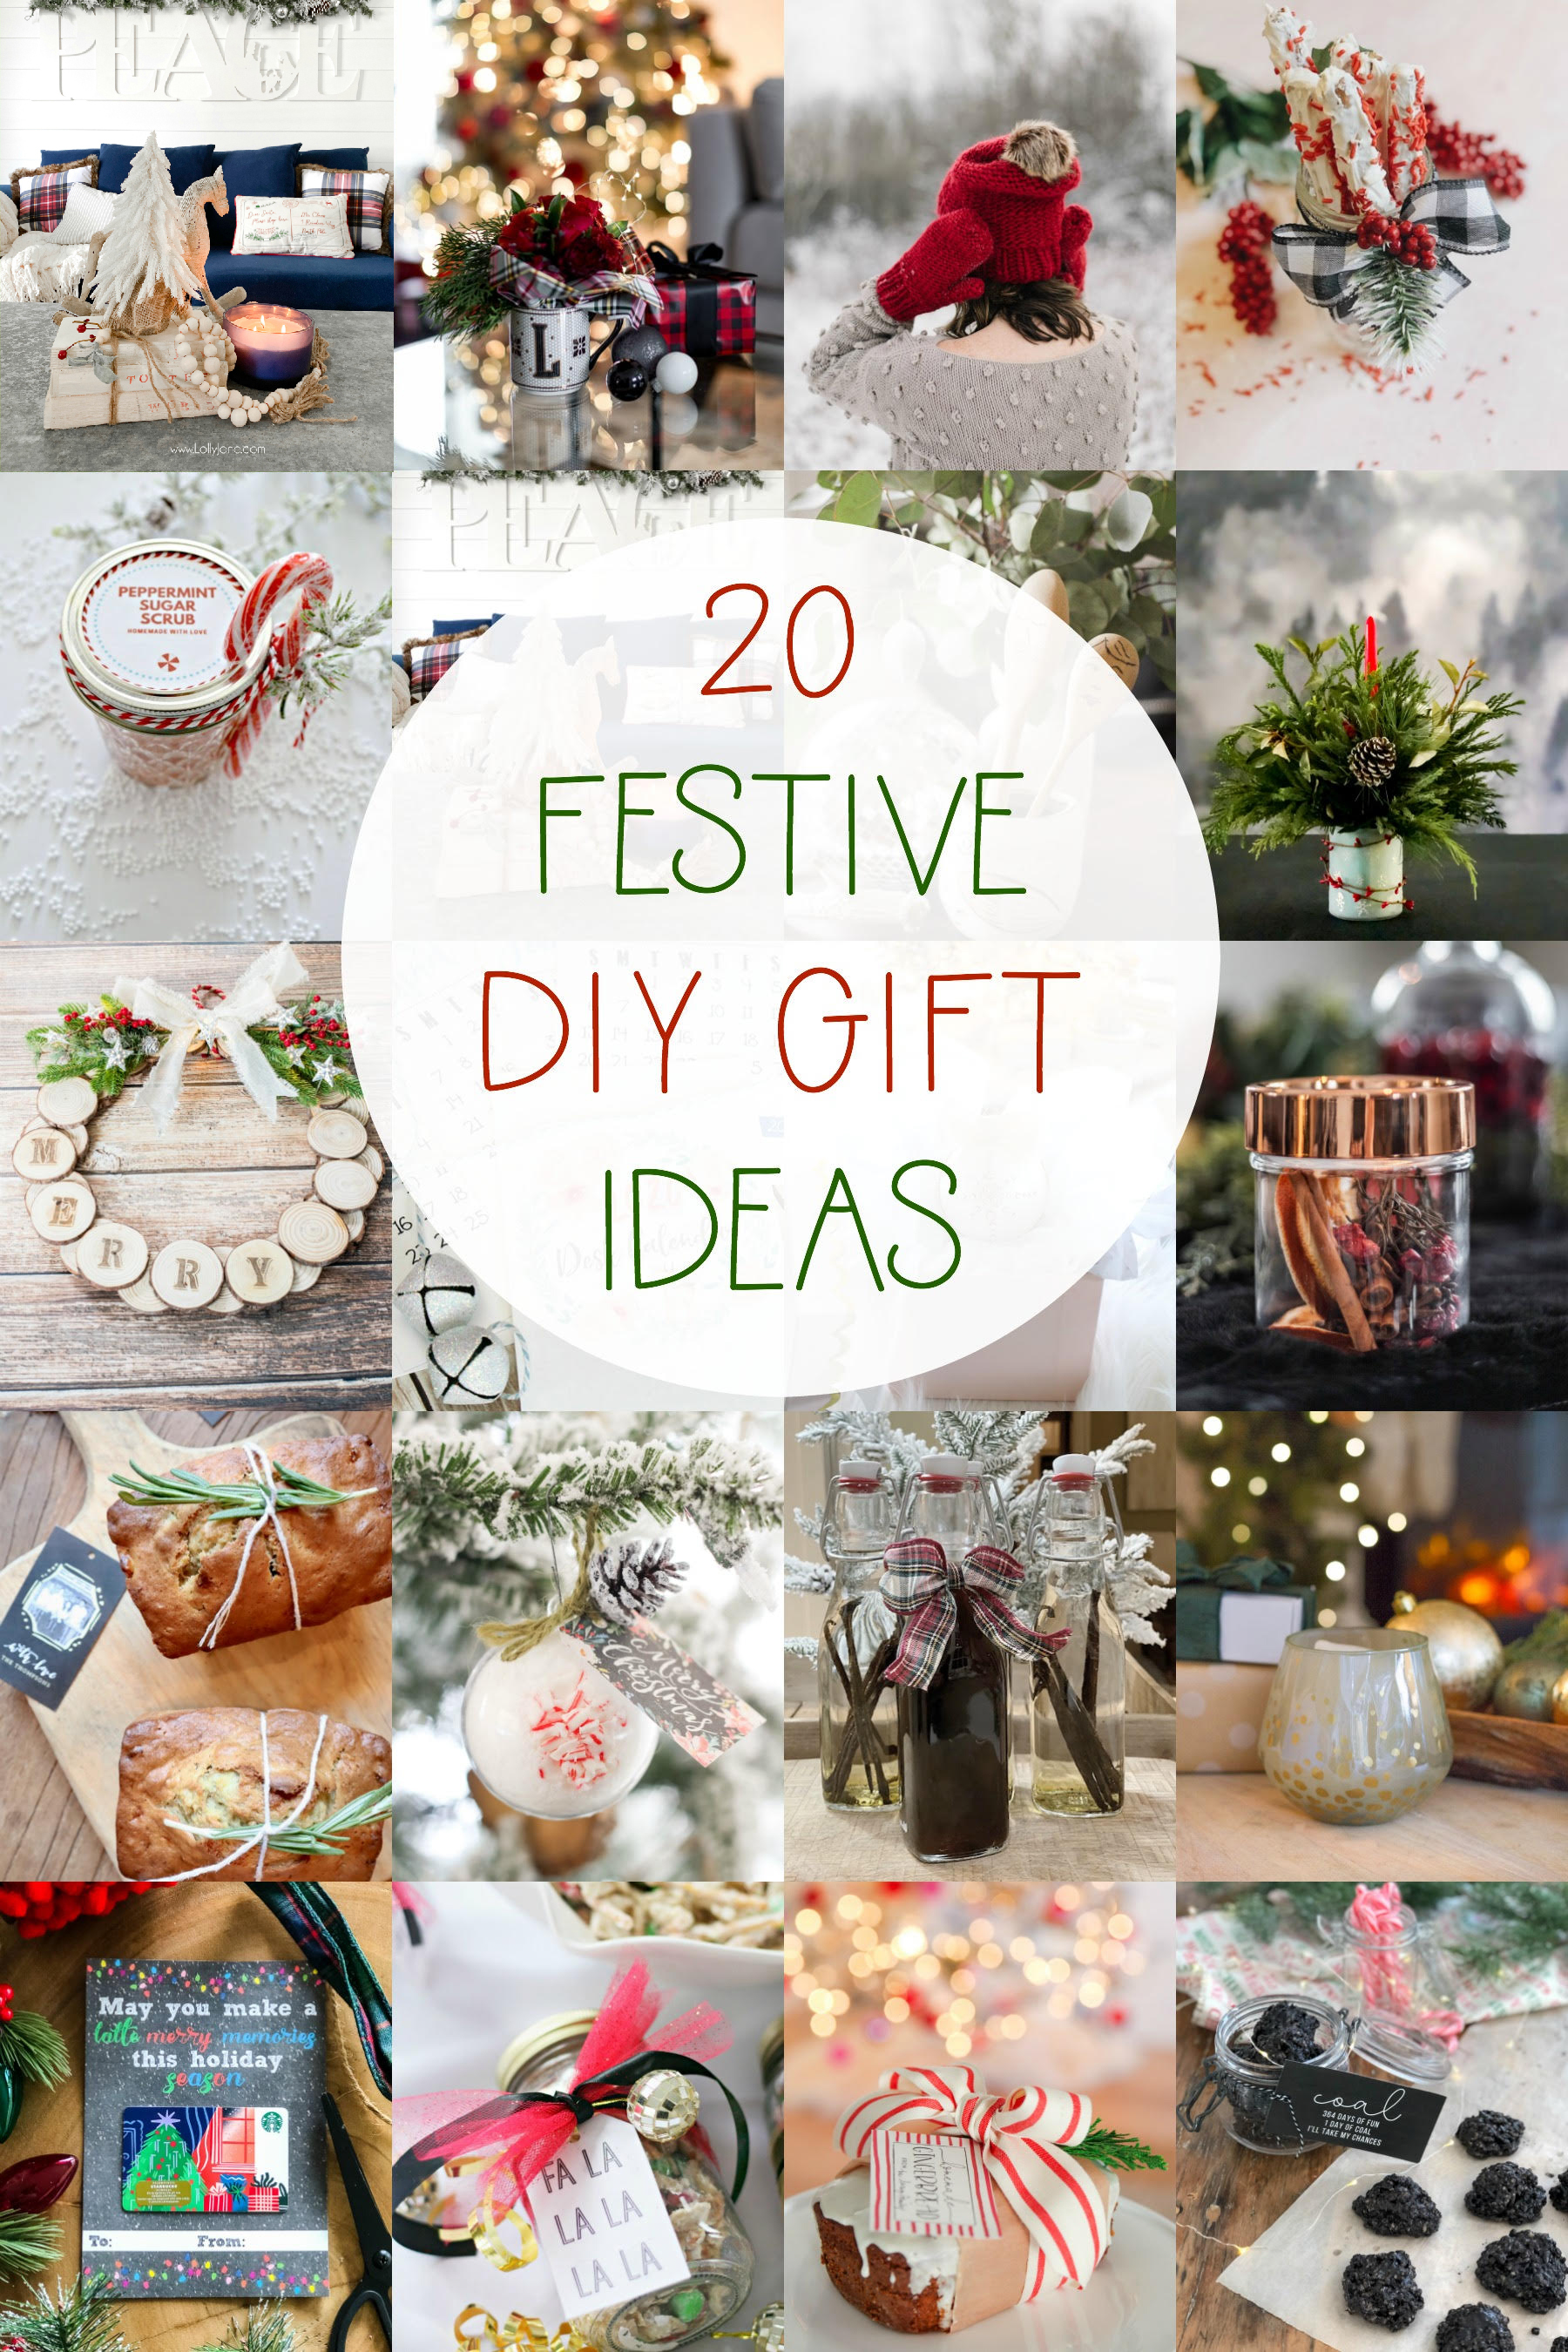 20 Festive DIY Gift Ideas! Perfect for Christmas gift exchanges, teacher gifts, neighbor gifts, and more! #diy #christmaspresent #christmasgift #handmadeChristmas